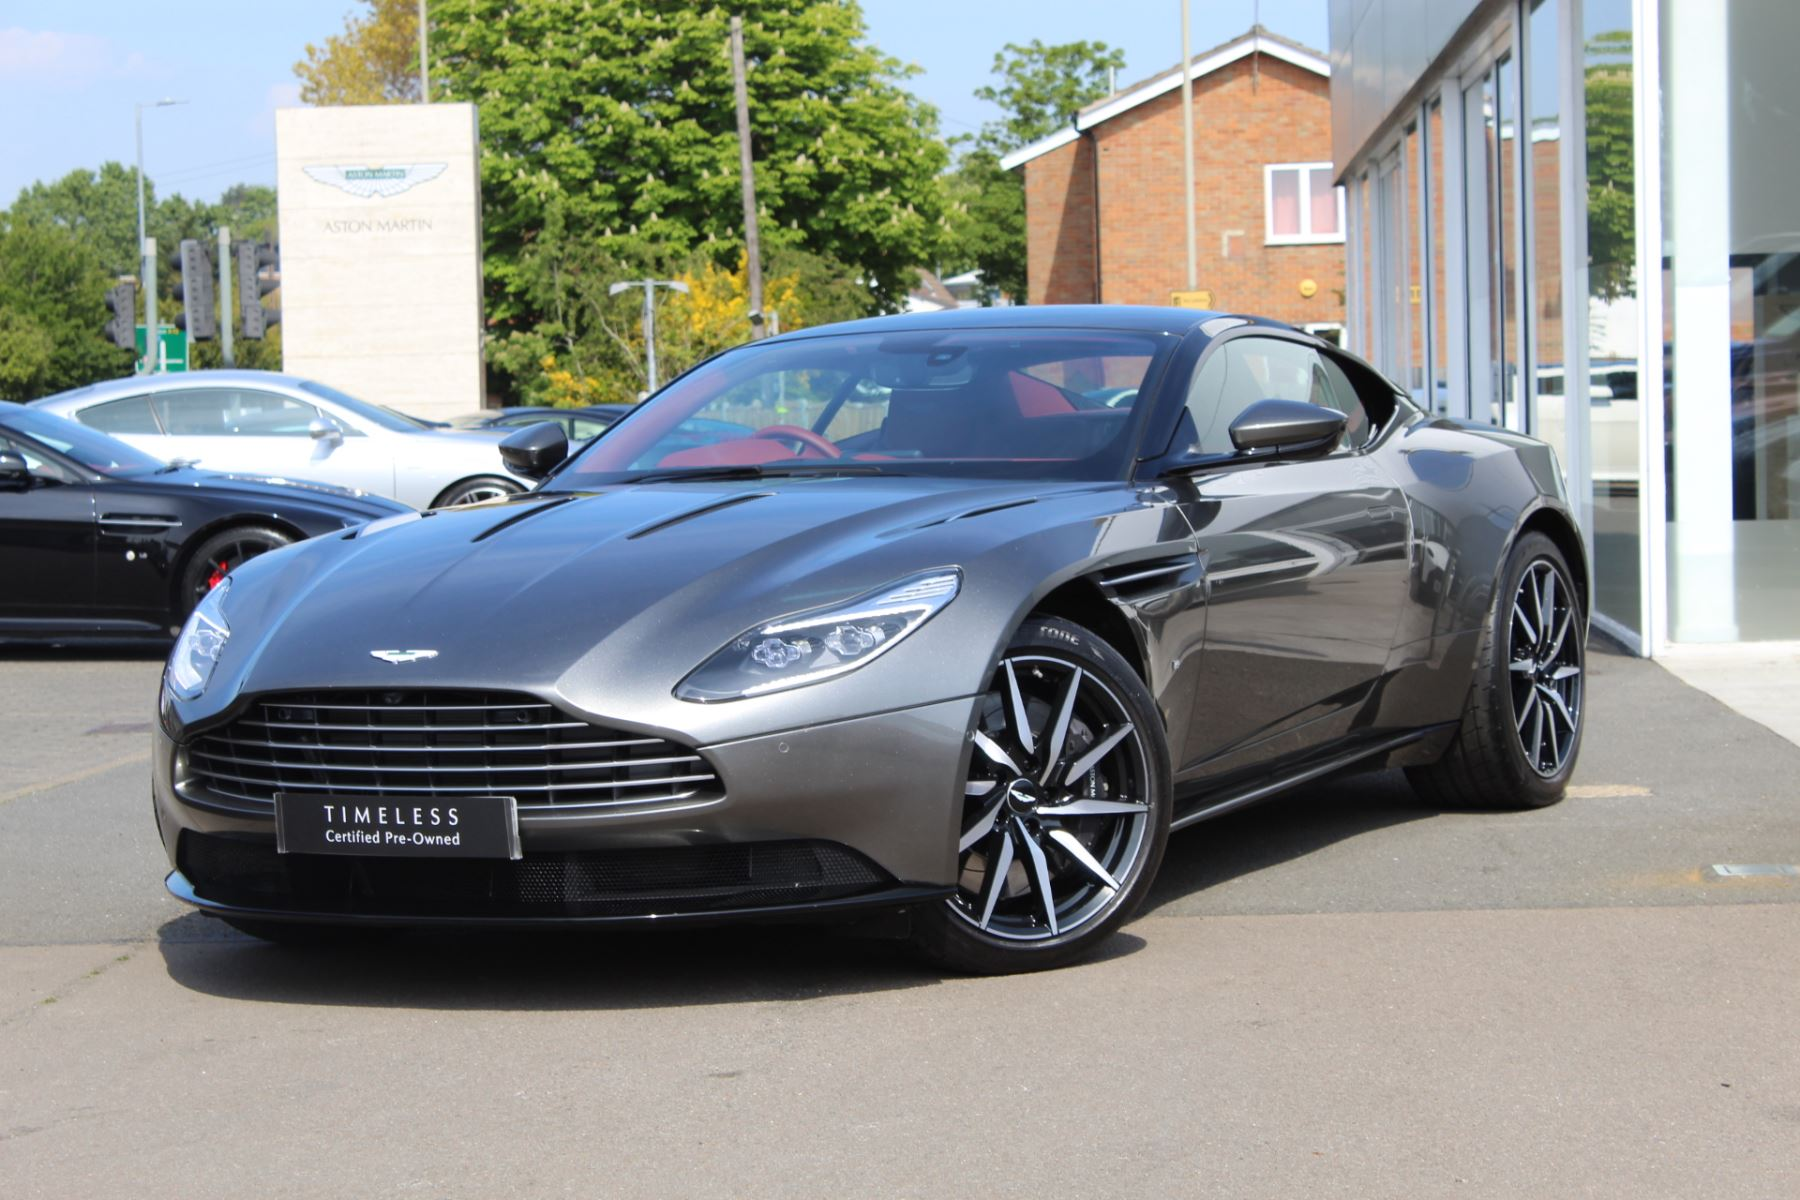 Aston Martin DB11 V12 2dr Touchtronic 5.2 Automatic Coupe (2019) image